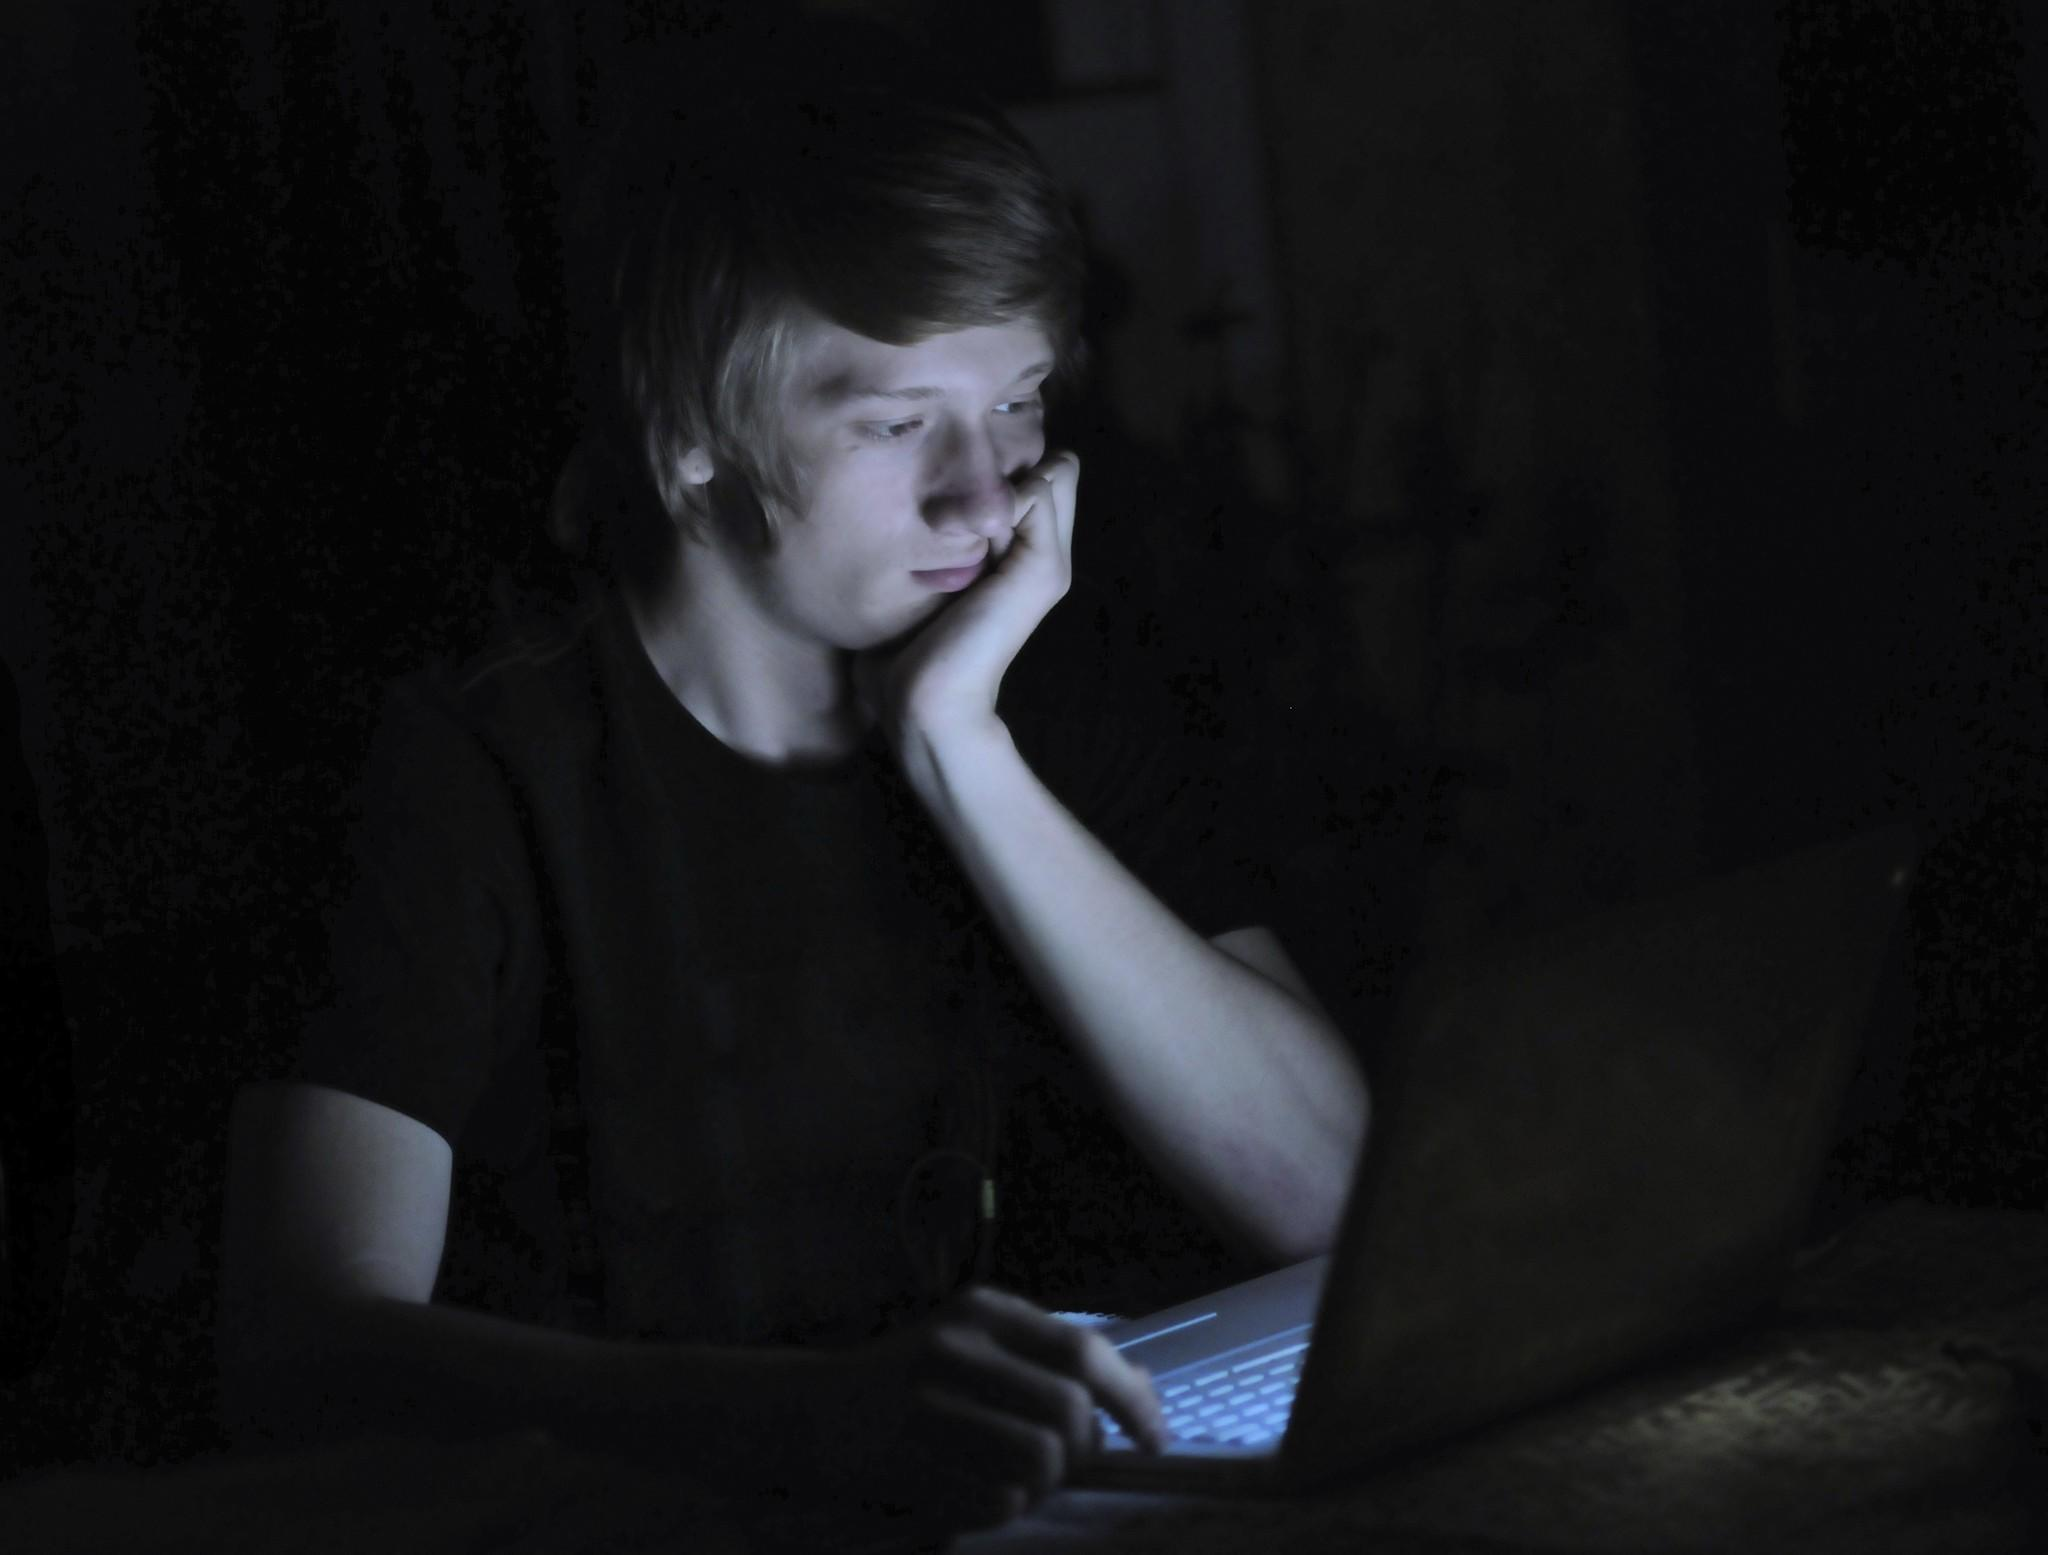 Teenage Male on Computer Laptop Late at Night. Stock photo from Getty Images.